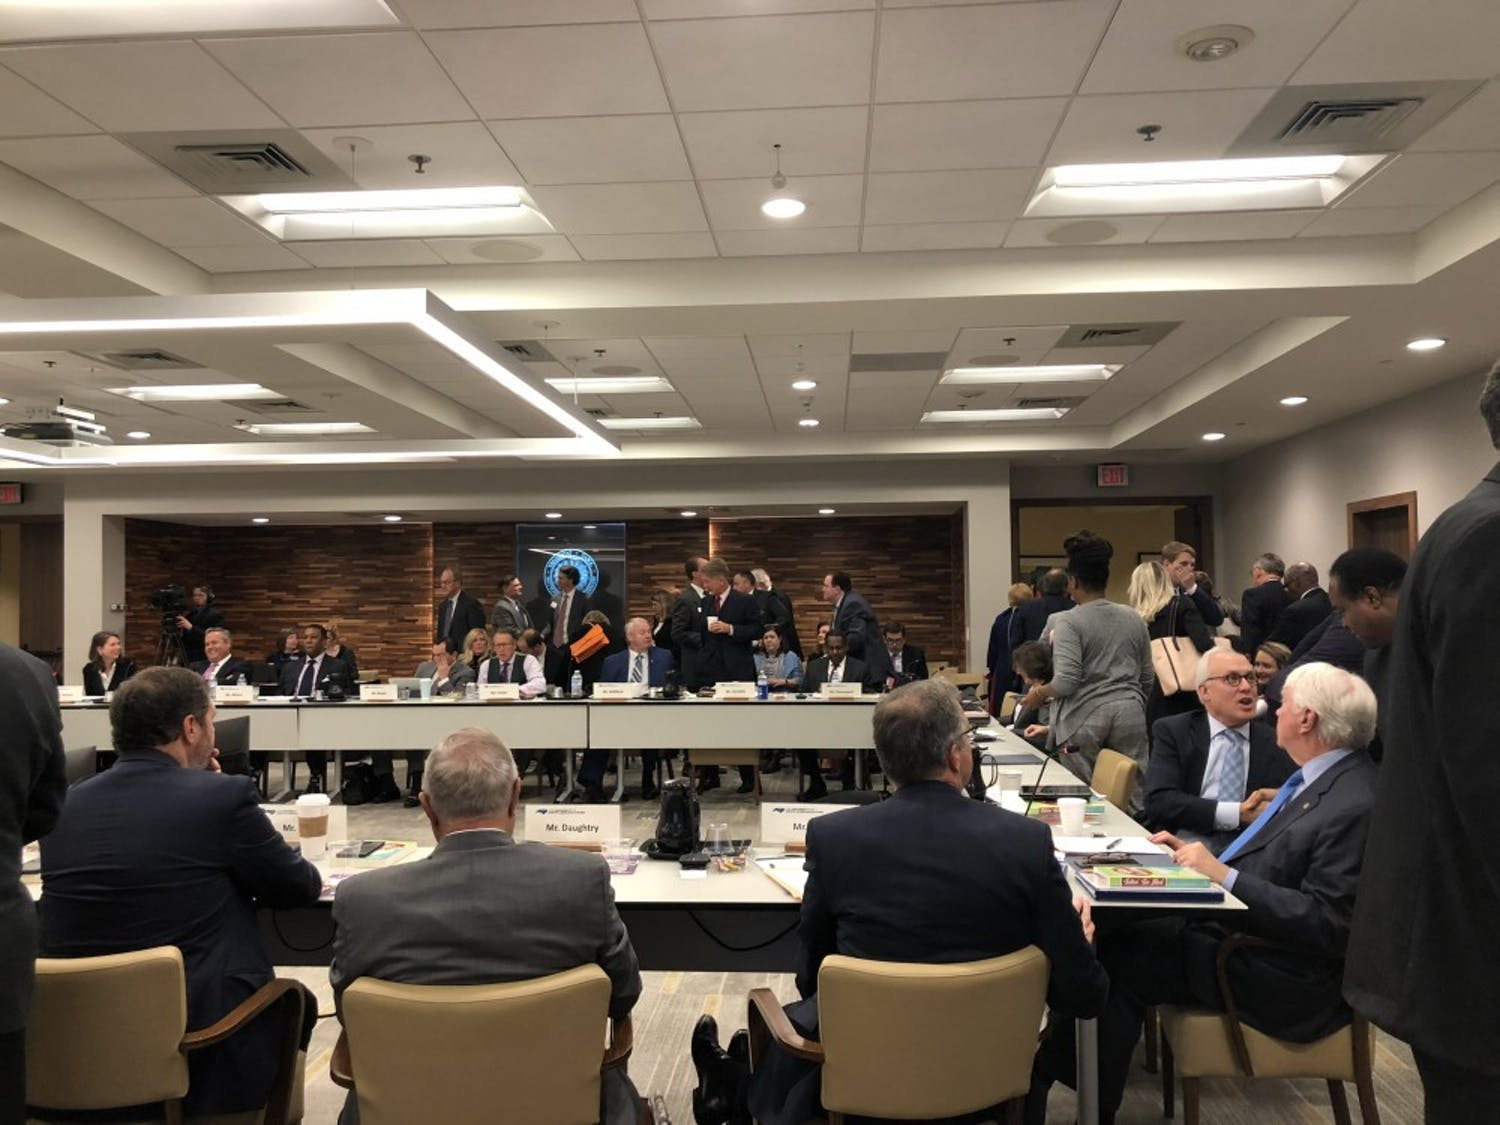 The Board of Governors' Nov. 9, 2018 meeting included remarks from Margaret Spellings on her announcement to resign as UNC-system president, a public comment session on Silent Sam and a grant supporting adult students.